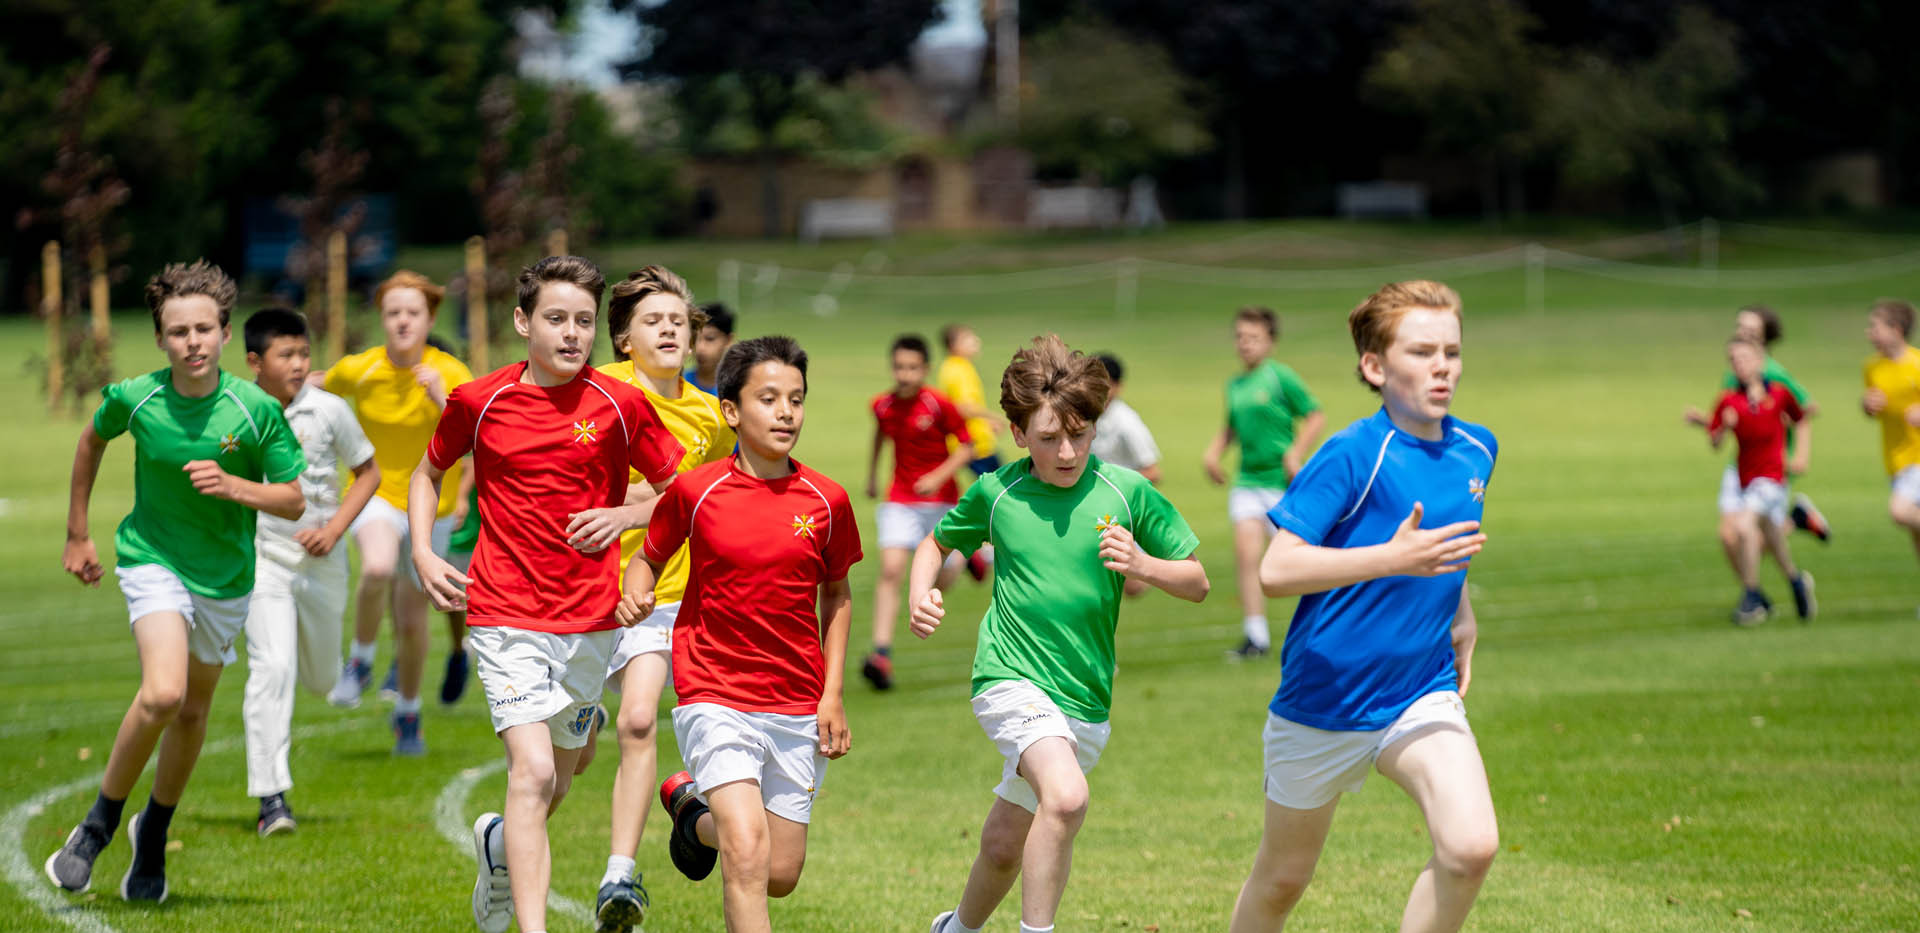 Eltham College: Sports Day